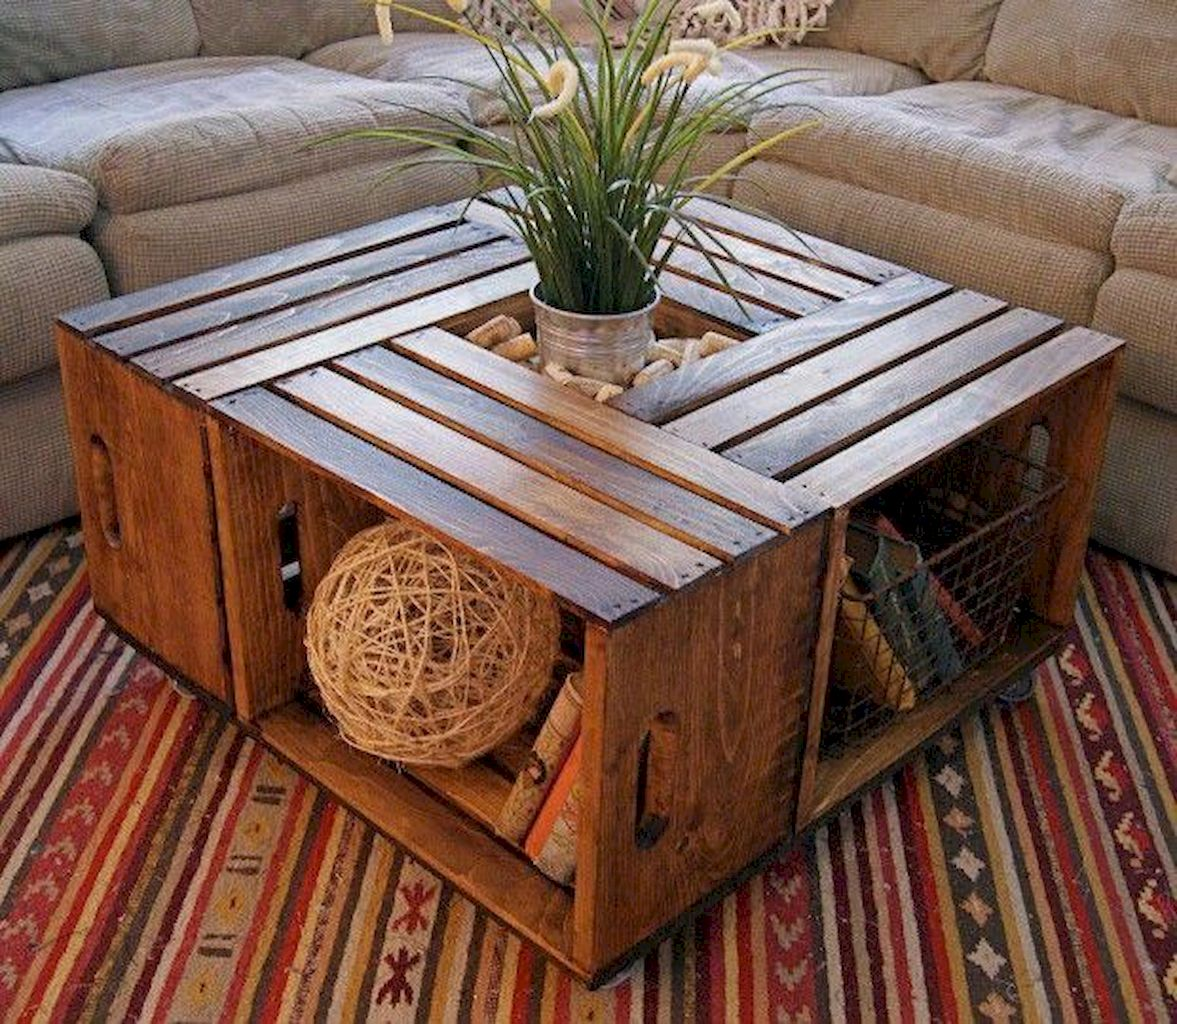 https://elonahome.com/wp-content/uploads/2018/11/DIY-Projects-with-Wood-Pallets-You-Can-Try-at-Home-Part-38.jpg